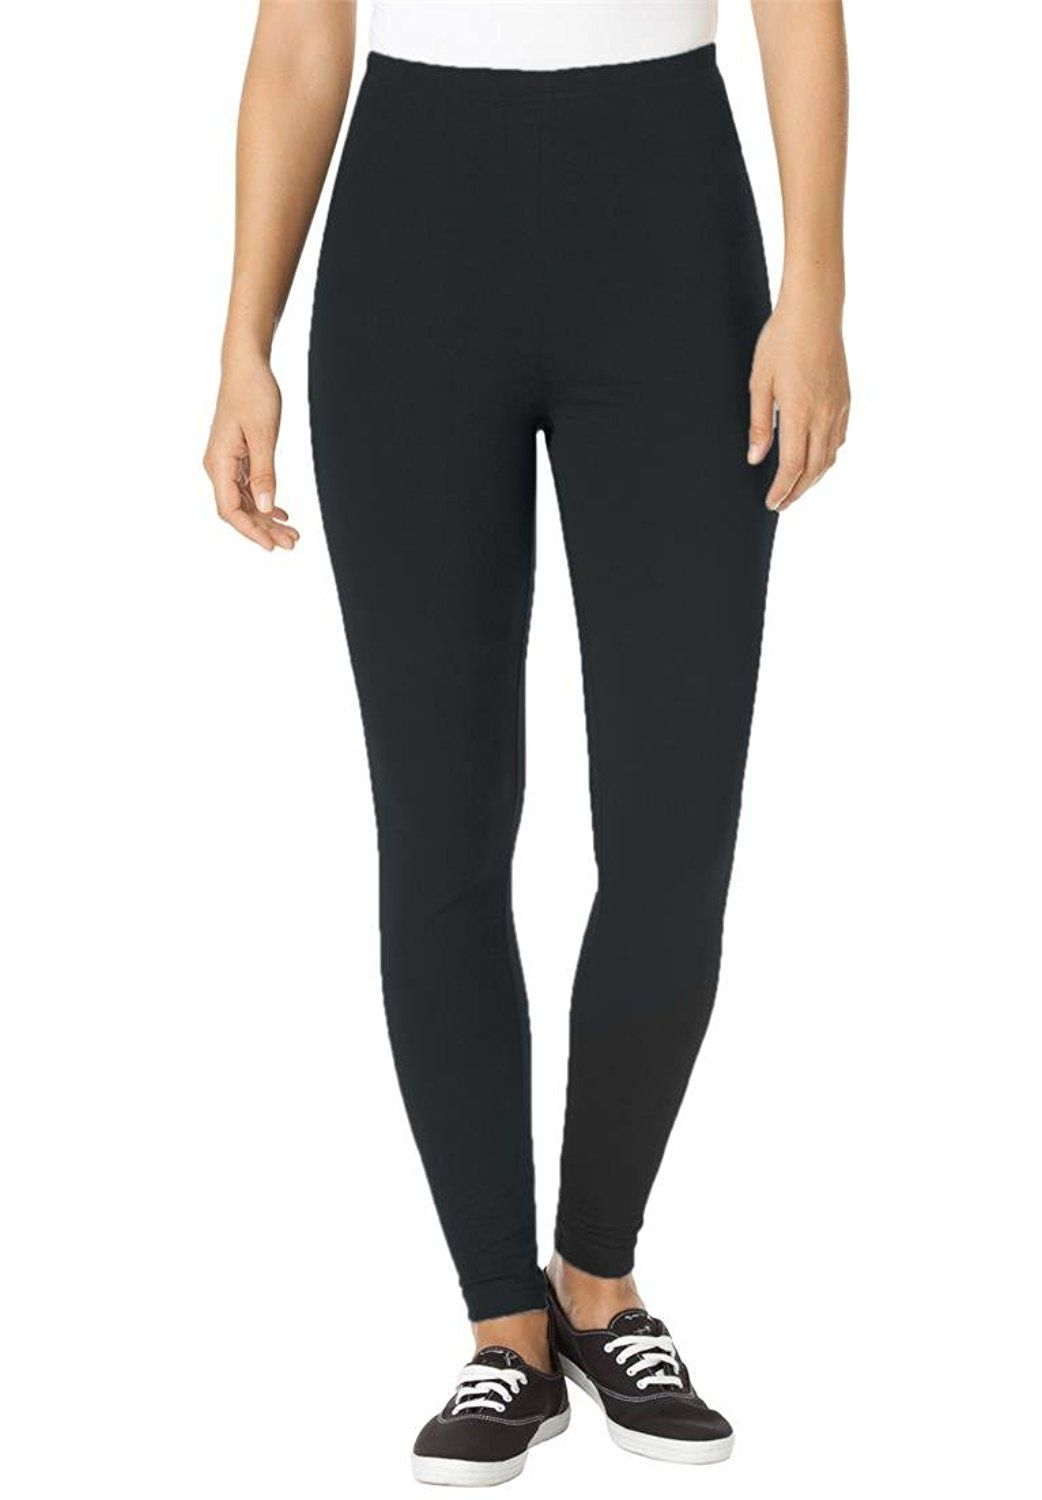 f68da3414f7 Women s Plus Size Tall Leggings In Stretch Knit   Find out more details by  clicking the image   Plus size leggings